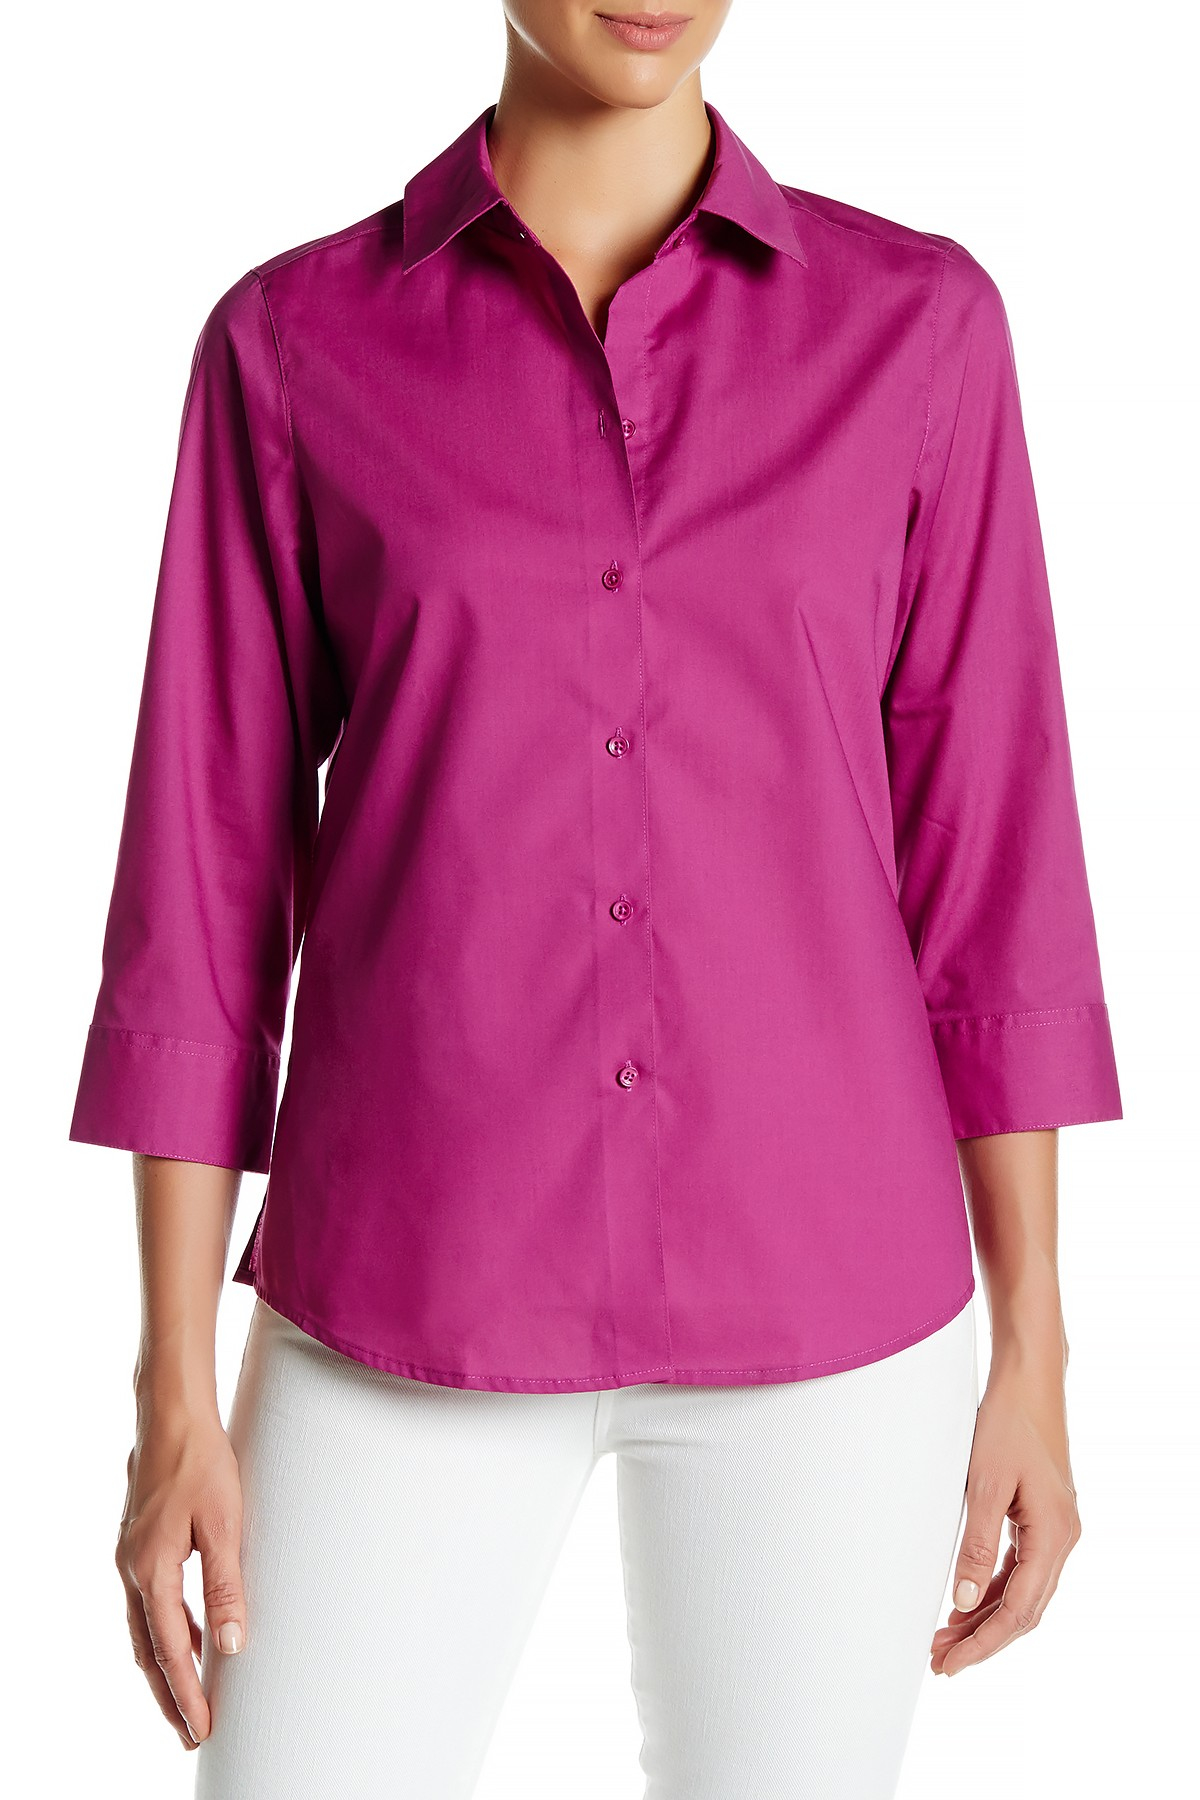 Foxcroft 3 4 Length Sleeve Shaped Fit Shirt In Pink